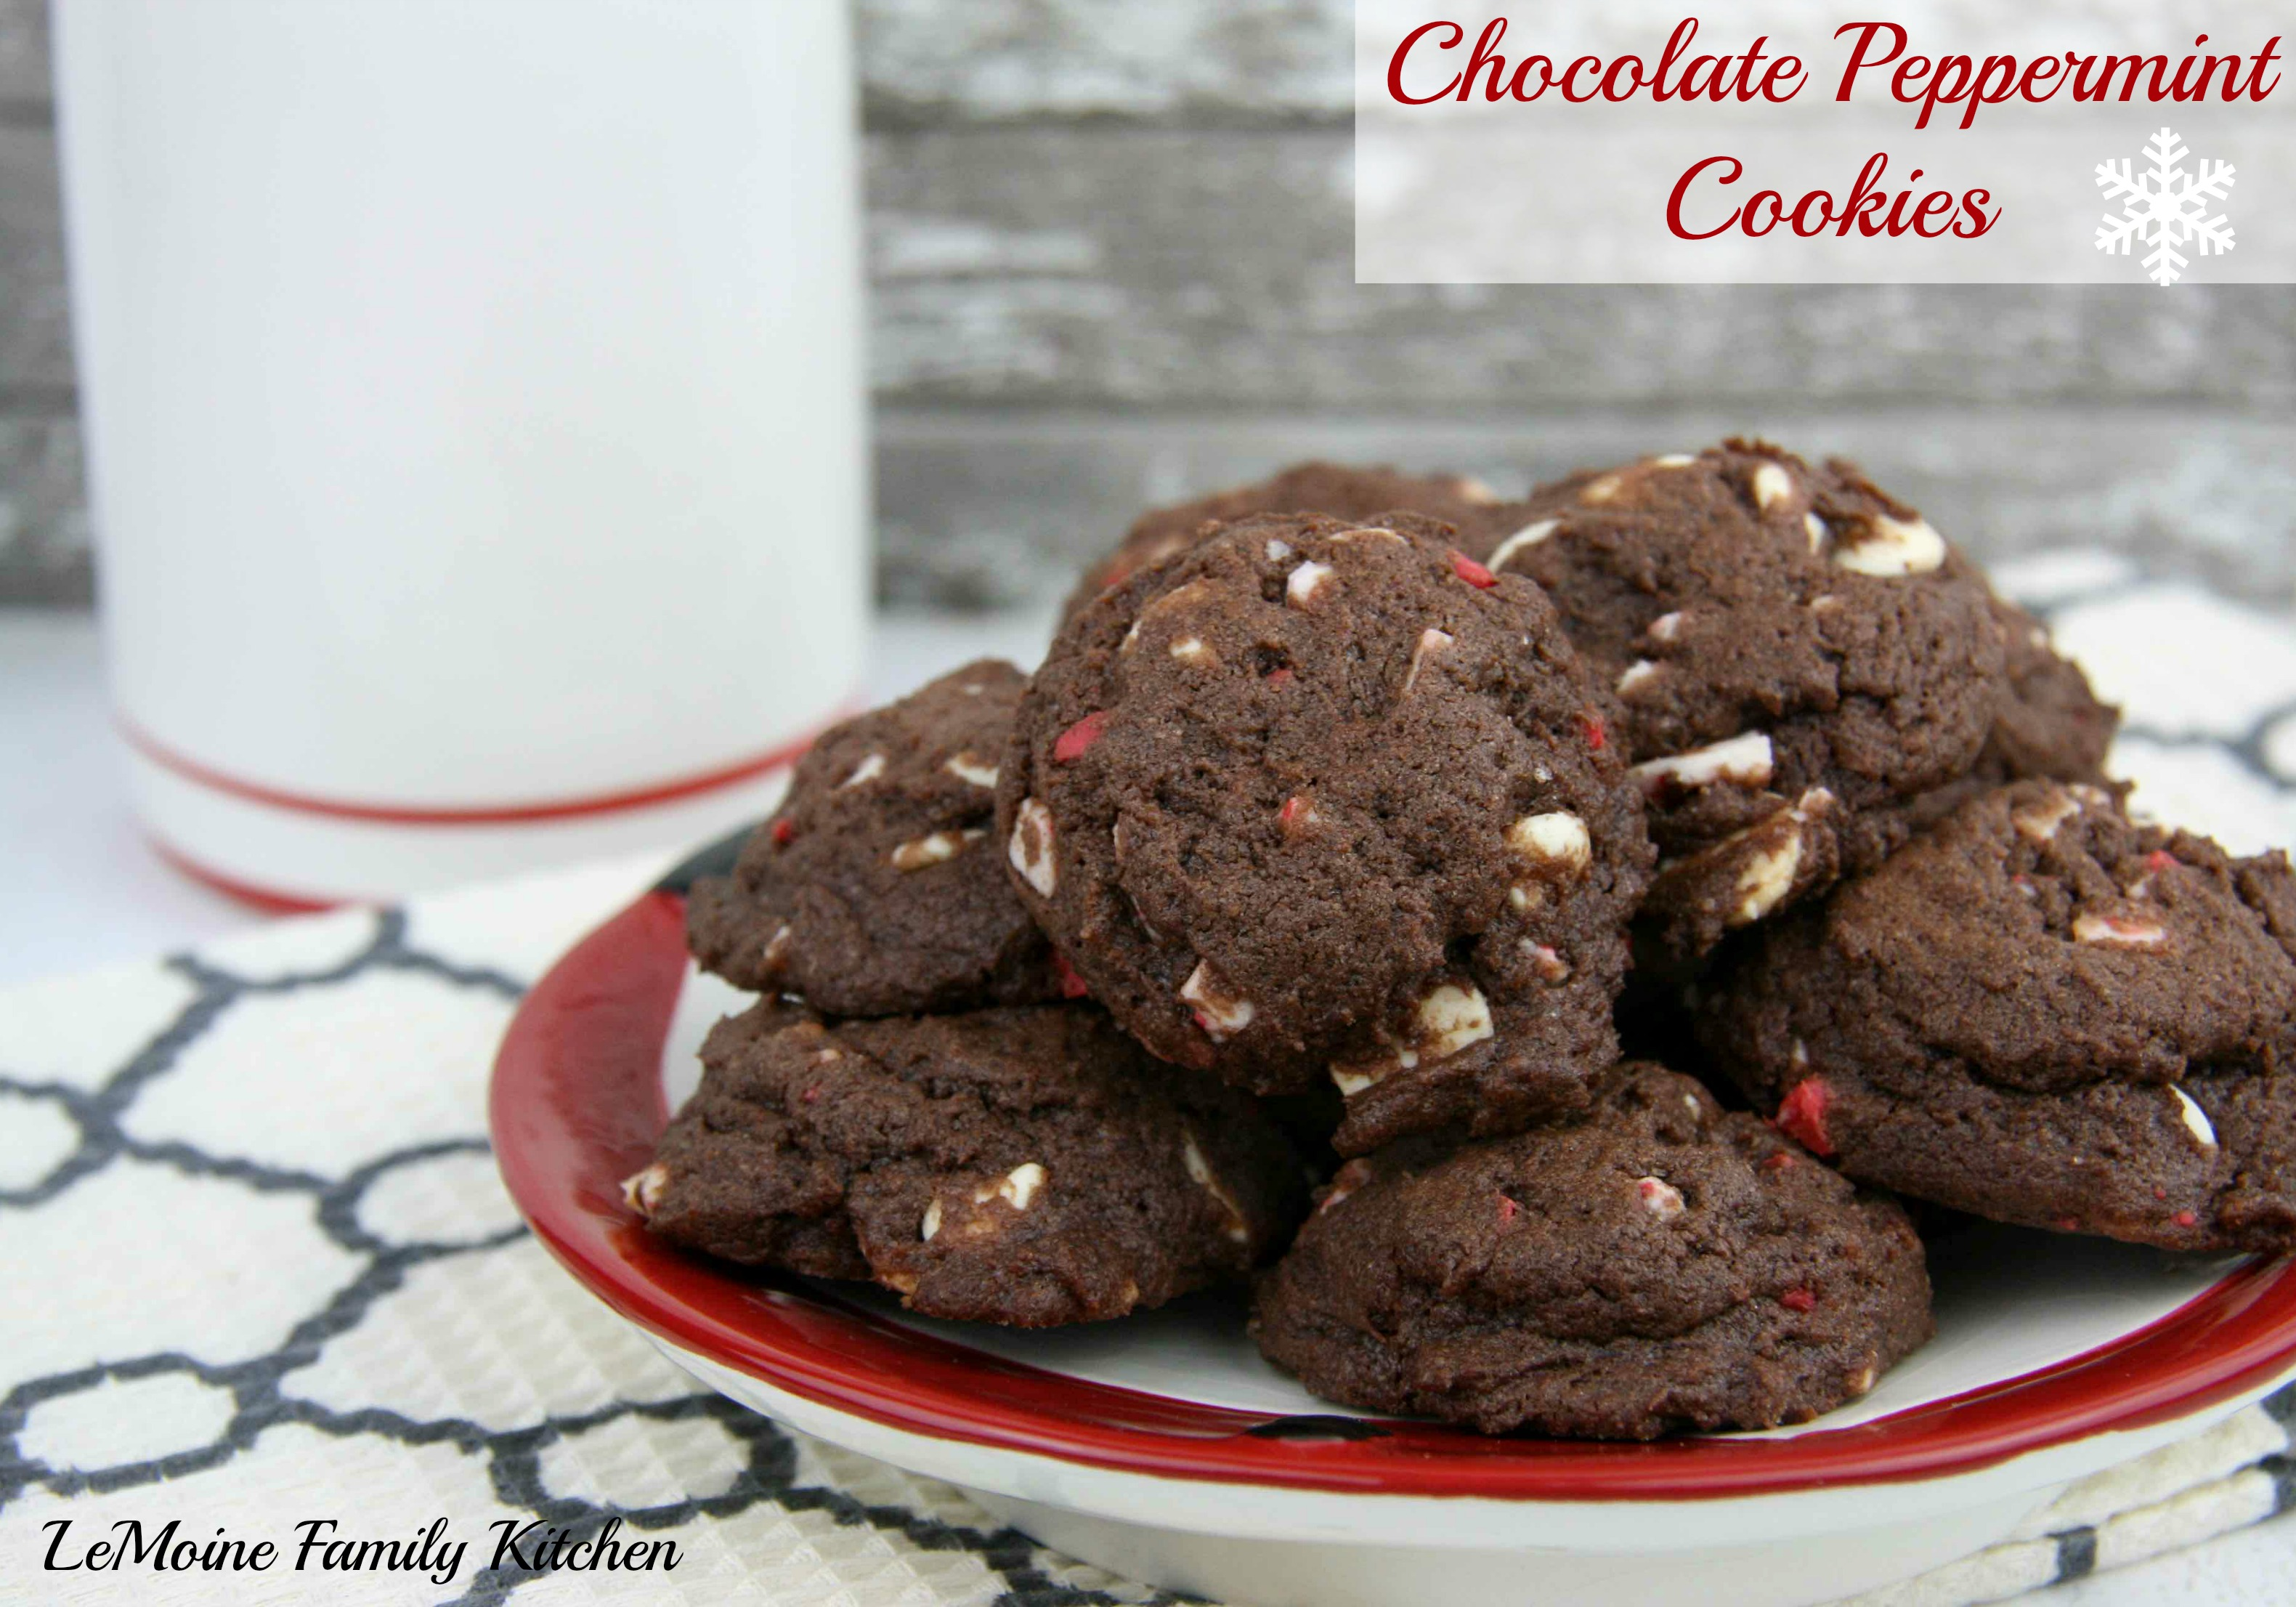 Chocolate Peppermint Cookies, Virtual Cookie Swap & $100 Pay Pal Cash Giveaway | LeMoine Family Kitchen #cookie #christmas #holiday #chocolate #giveaway